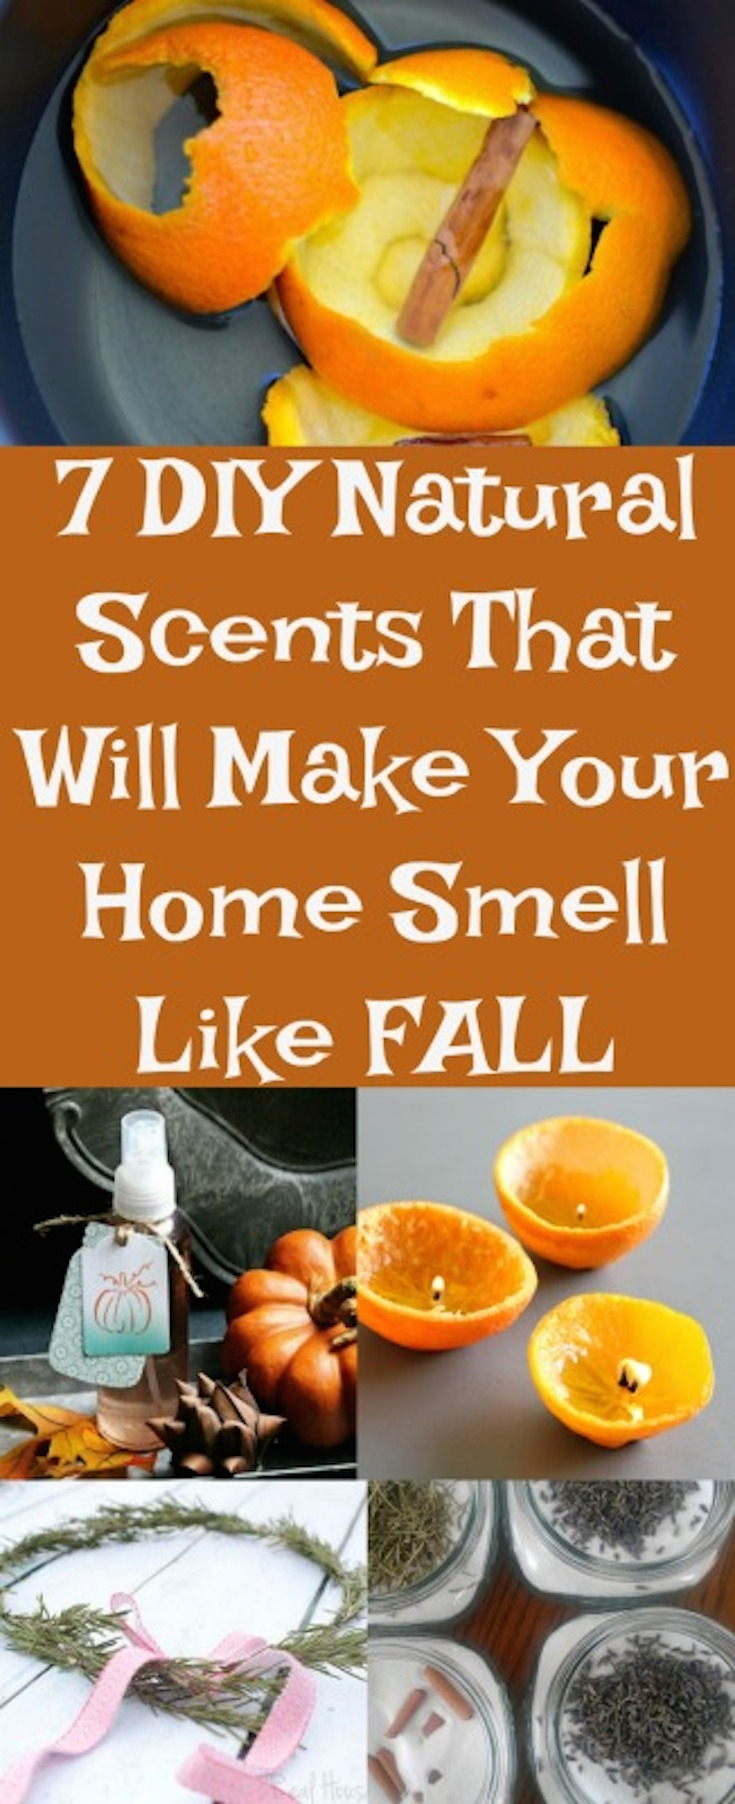 7 DIY Natural Scents That Will Make Your Home Smell Like Fall